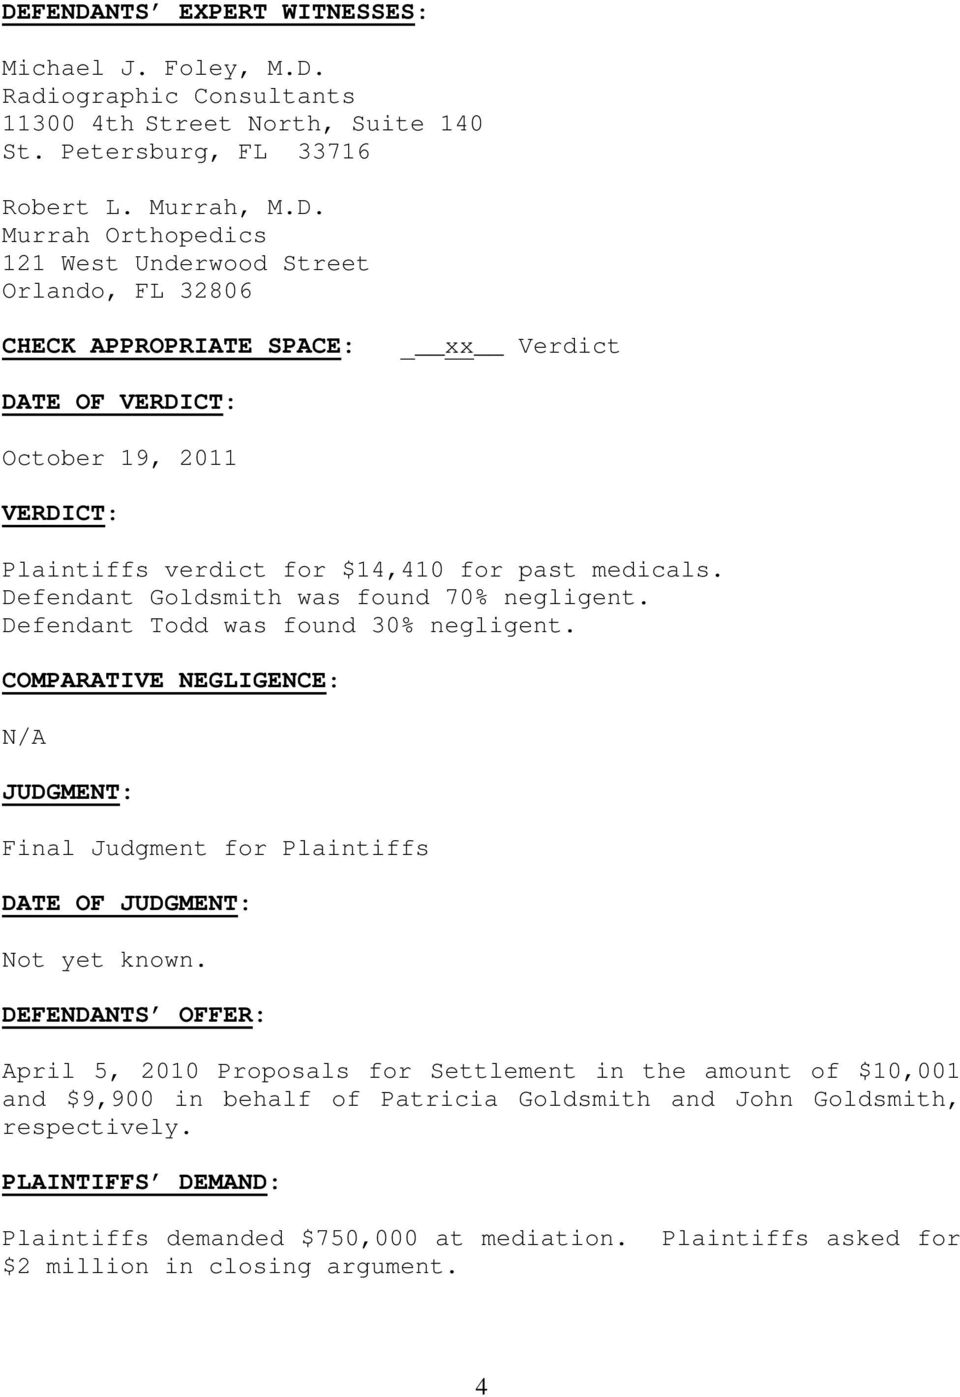 DEFENDANTS OFFER: April 5, 2010 Proposals for Settlement in the amount of $10,001 and $9,900 in behalf of Patricia Goldsmith and John Goldsmith, respectively.